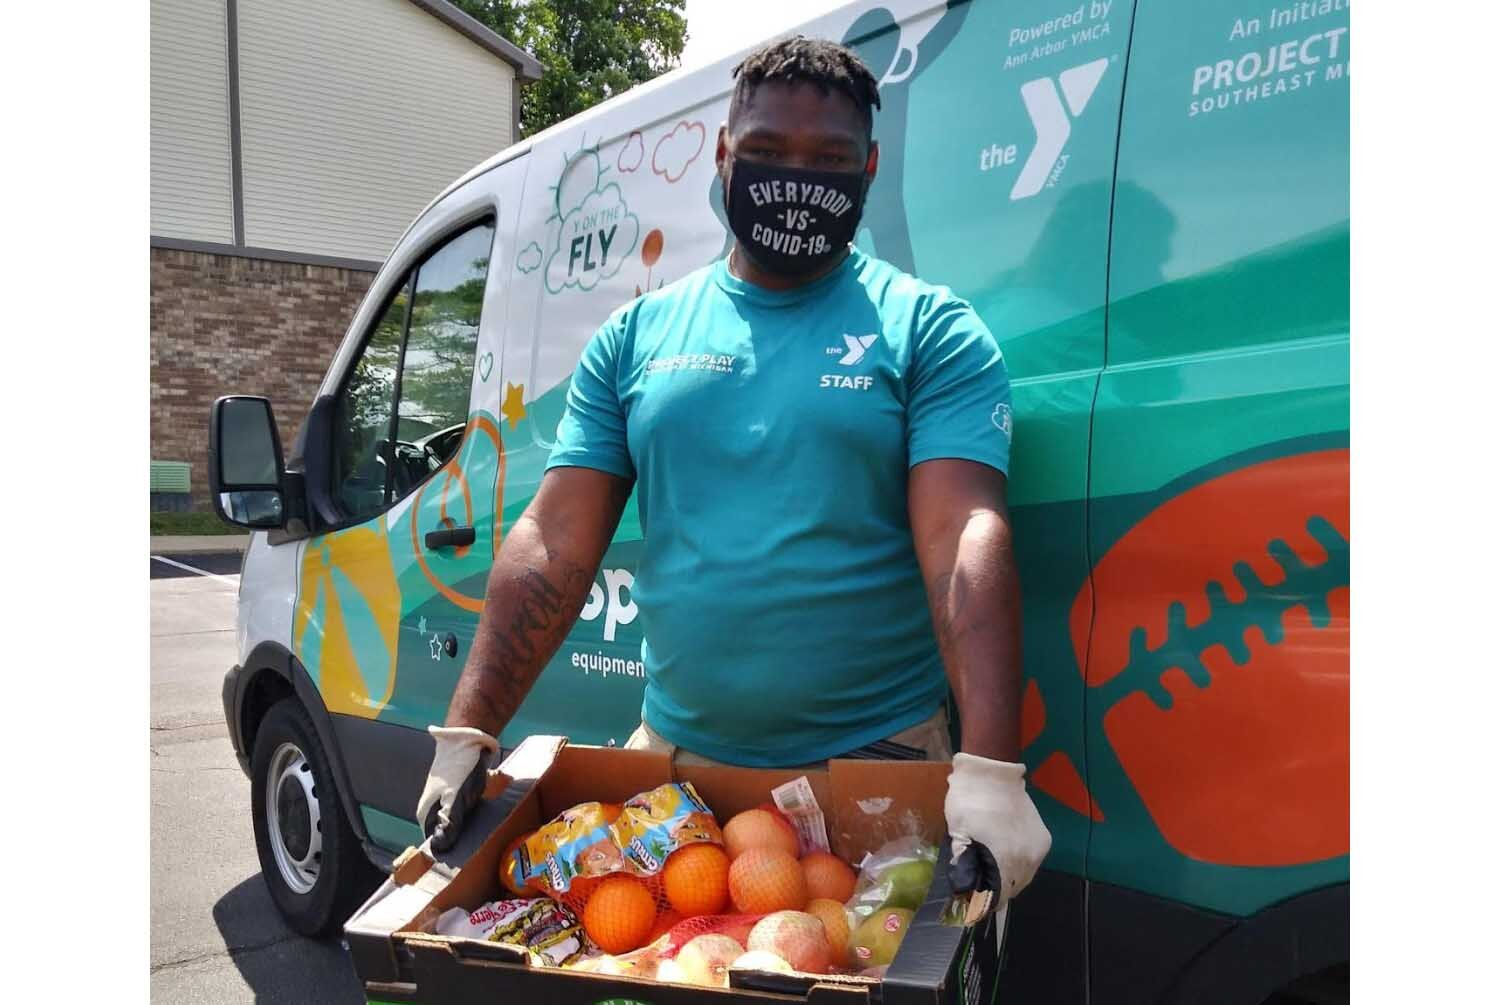 With funding from the U.S. Department of Agriculture, Ann Arbor YMCA has been distributing produce boxes weekly for families in need during the pandemic.